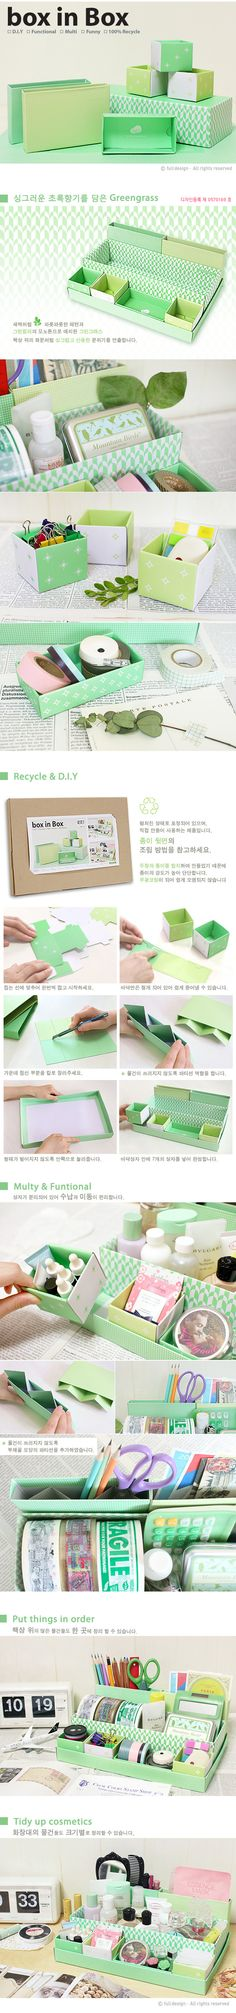 Multi Use Ordering Box Full Design Box in Box